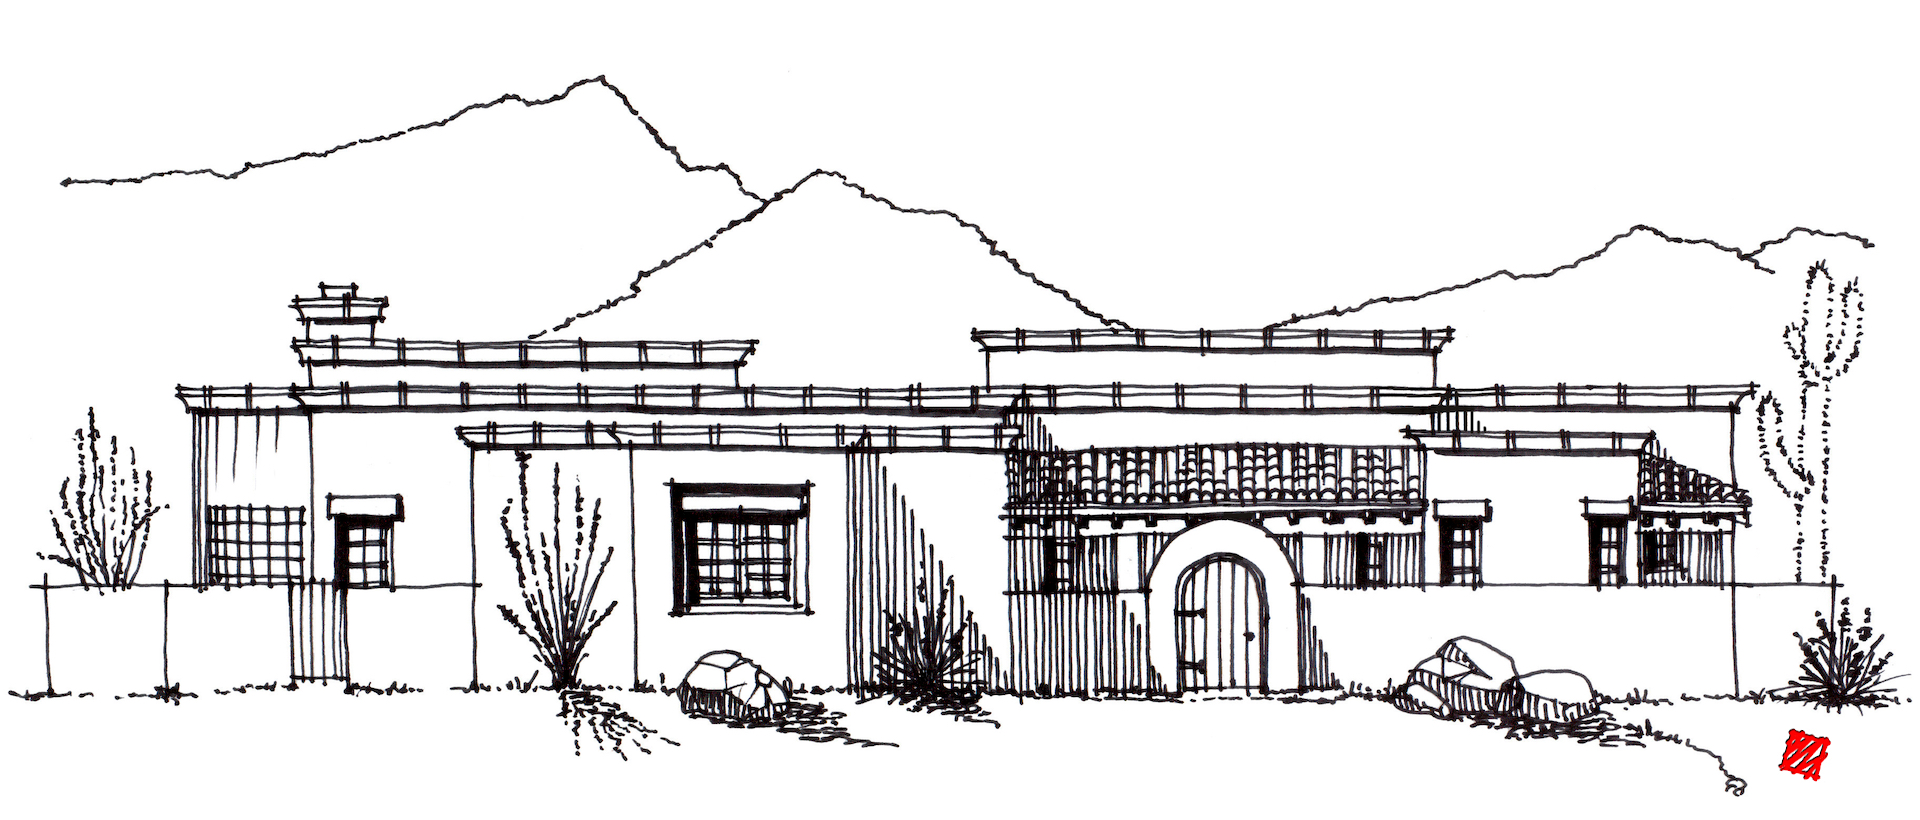 Custom Desert Home Design-Front Elevation-Ranch Villa, Estrella Mountain Ranch Arizona